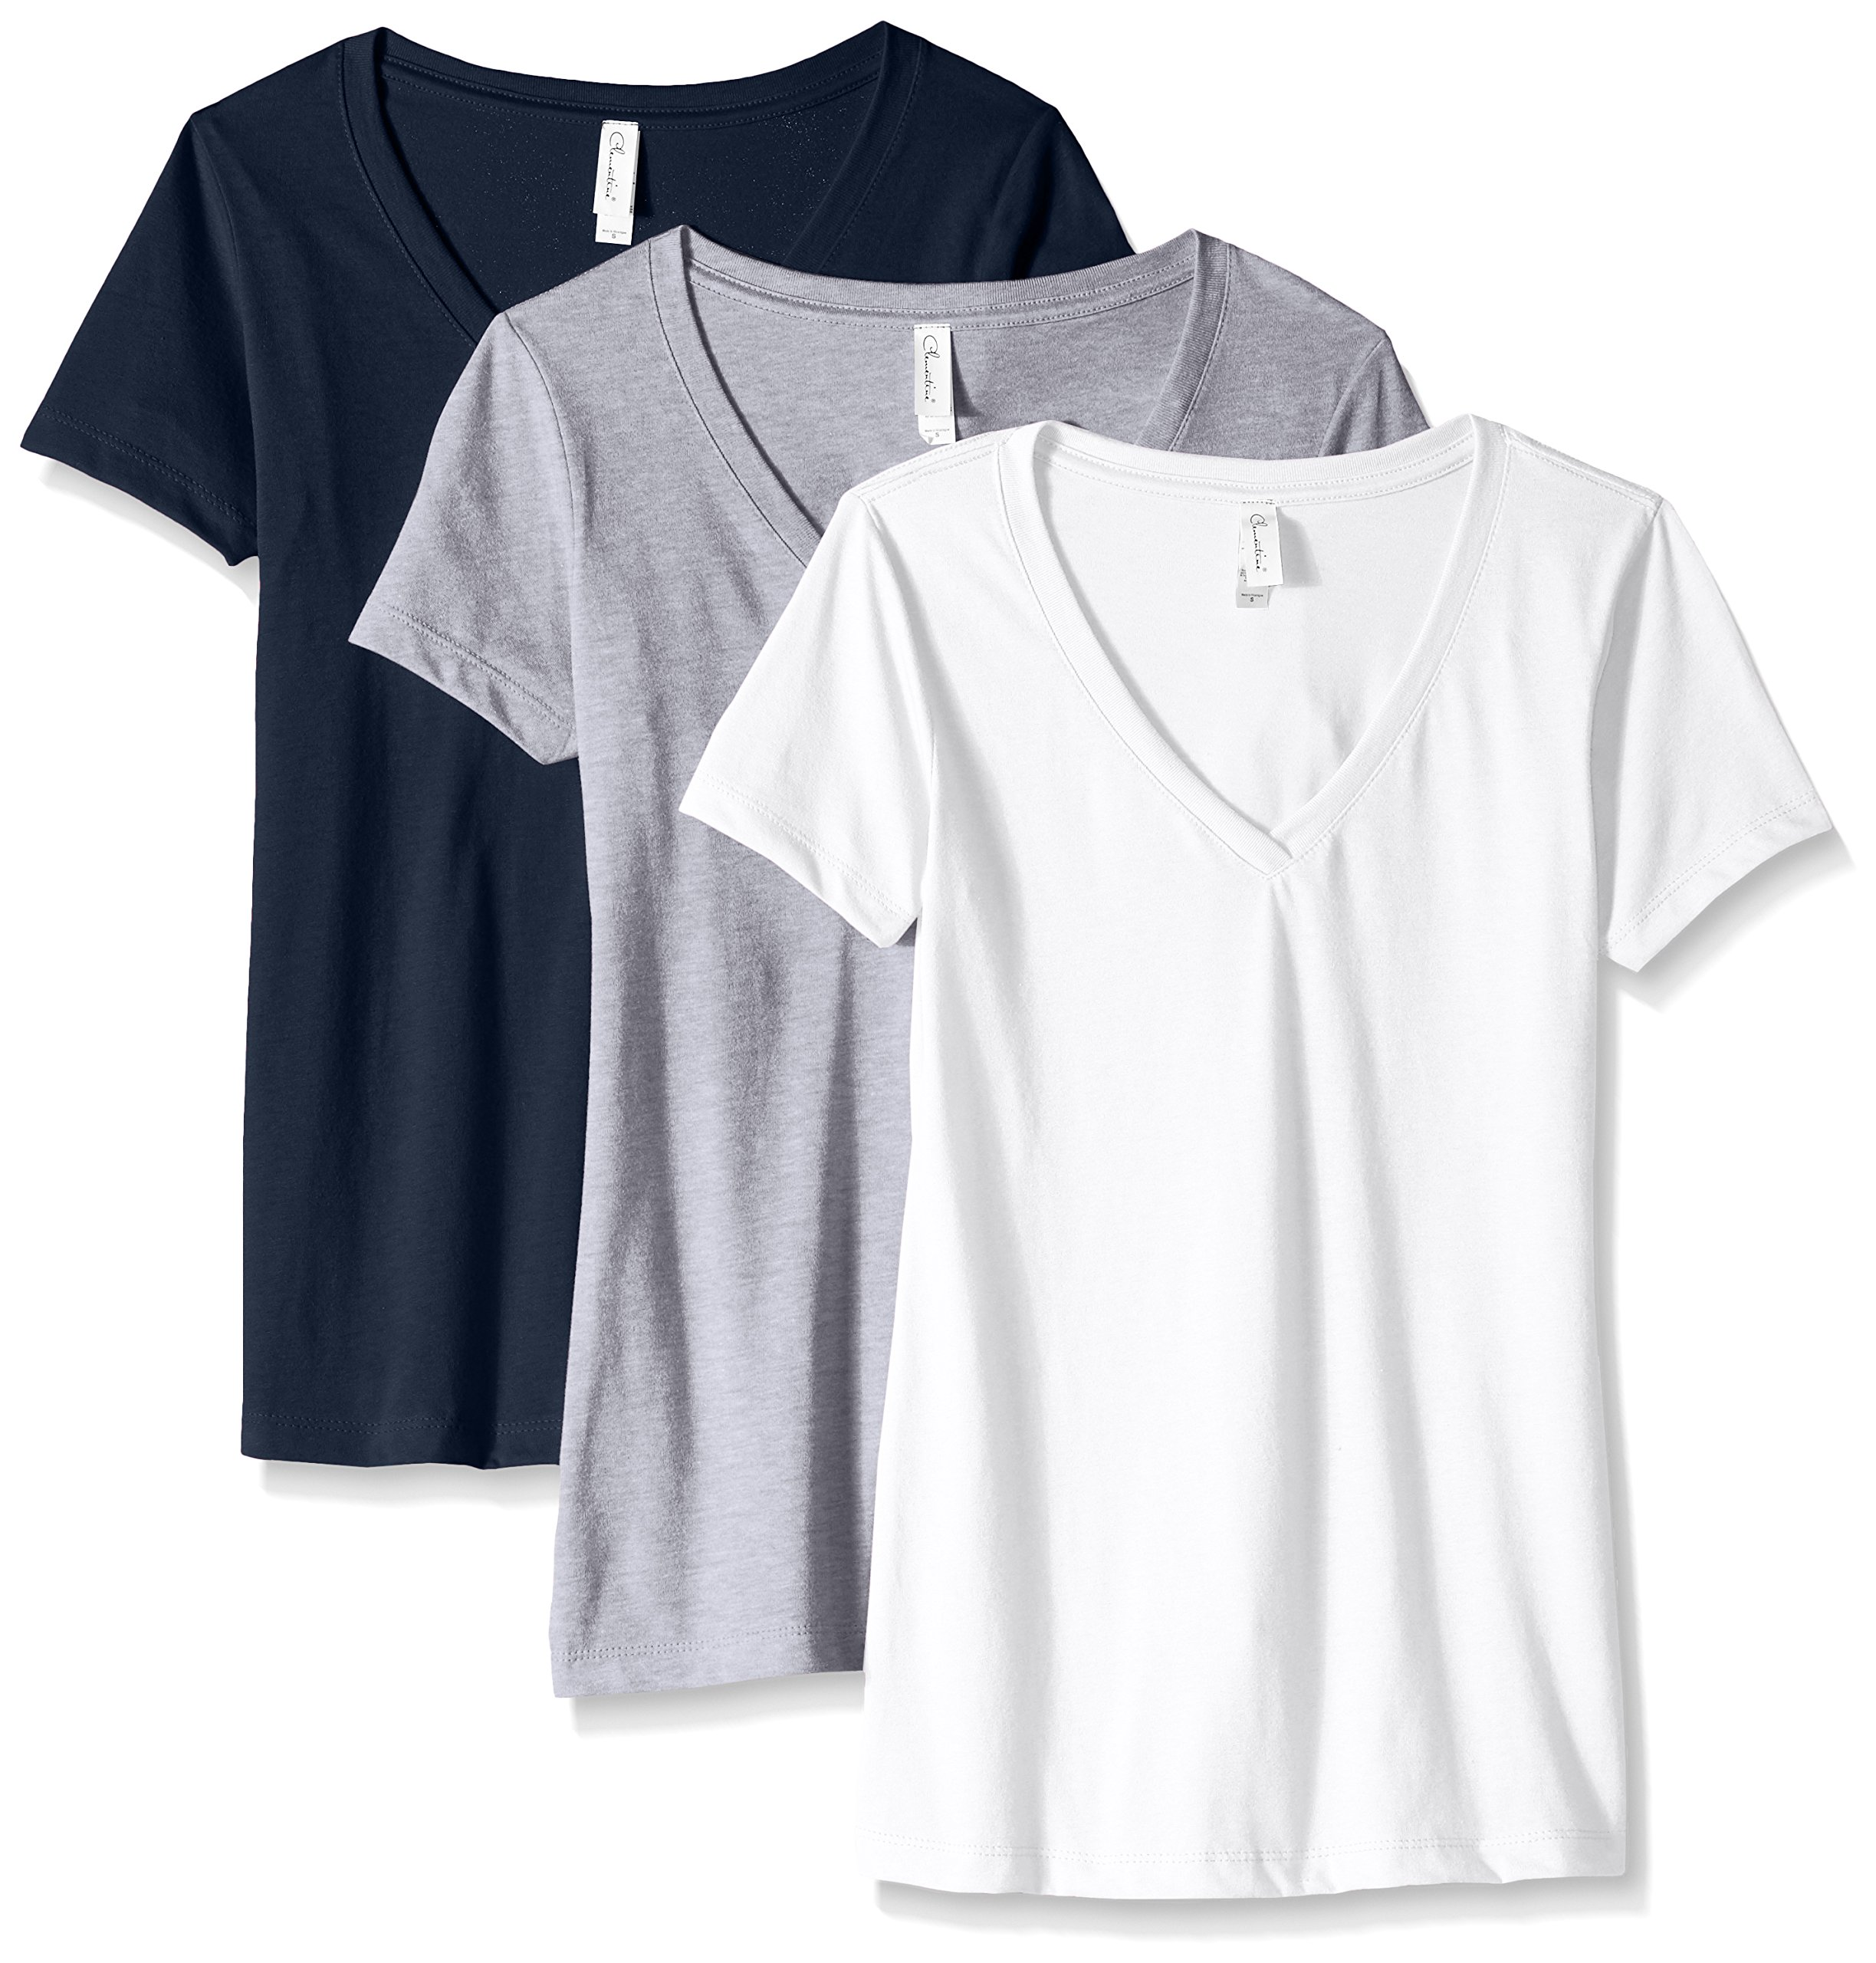 Clementine Apparel Women's Petite Plus Ideal V-Neck T-Shirt (Pack of 3), WhiteHeather GrayMidnight Navy, L